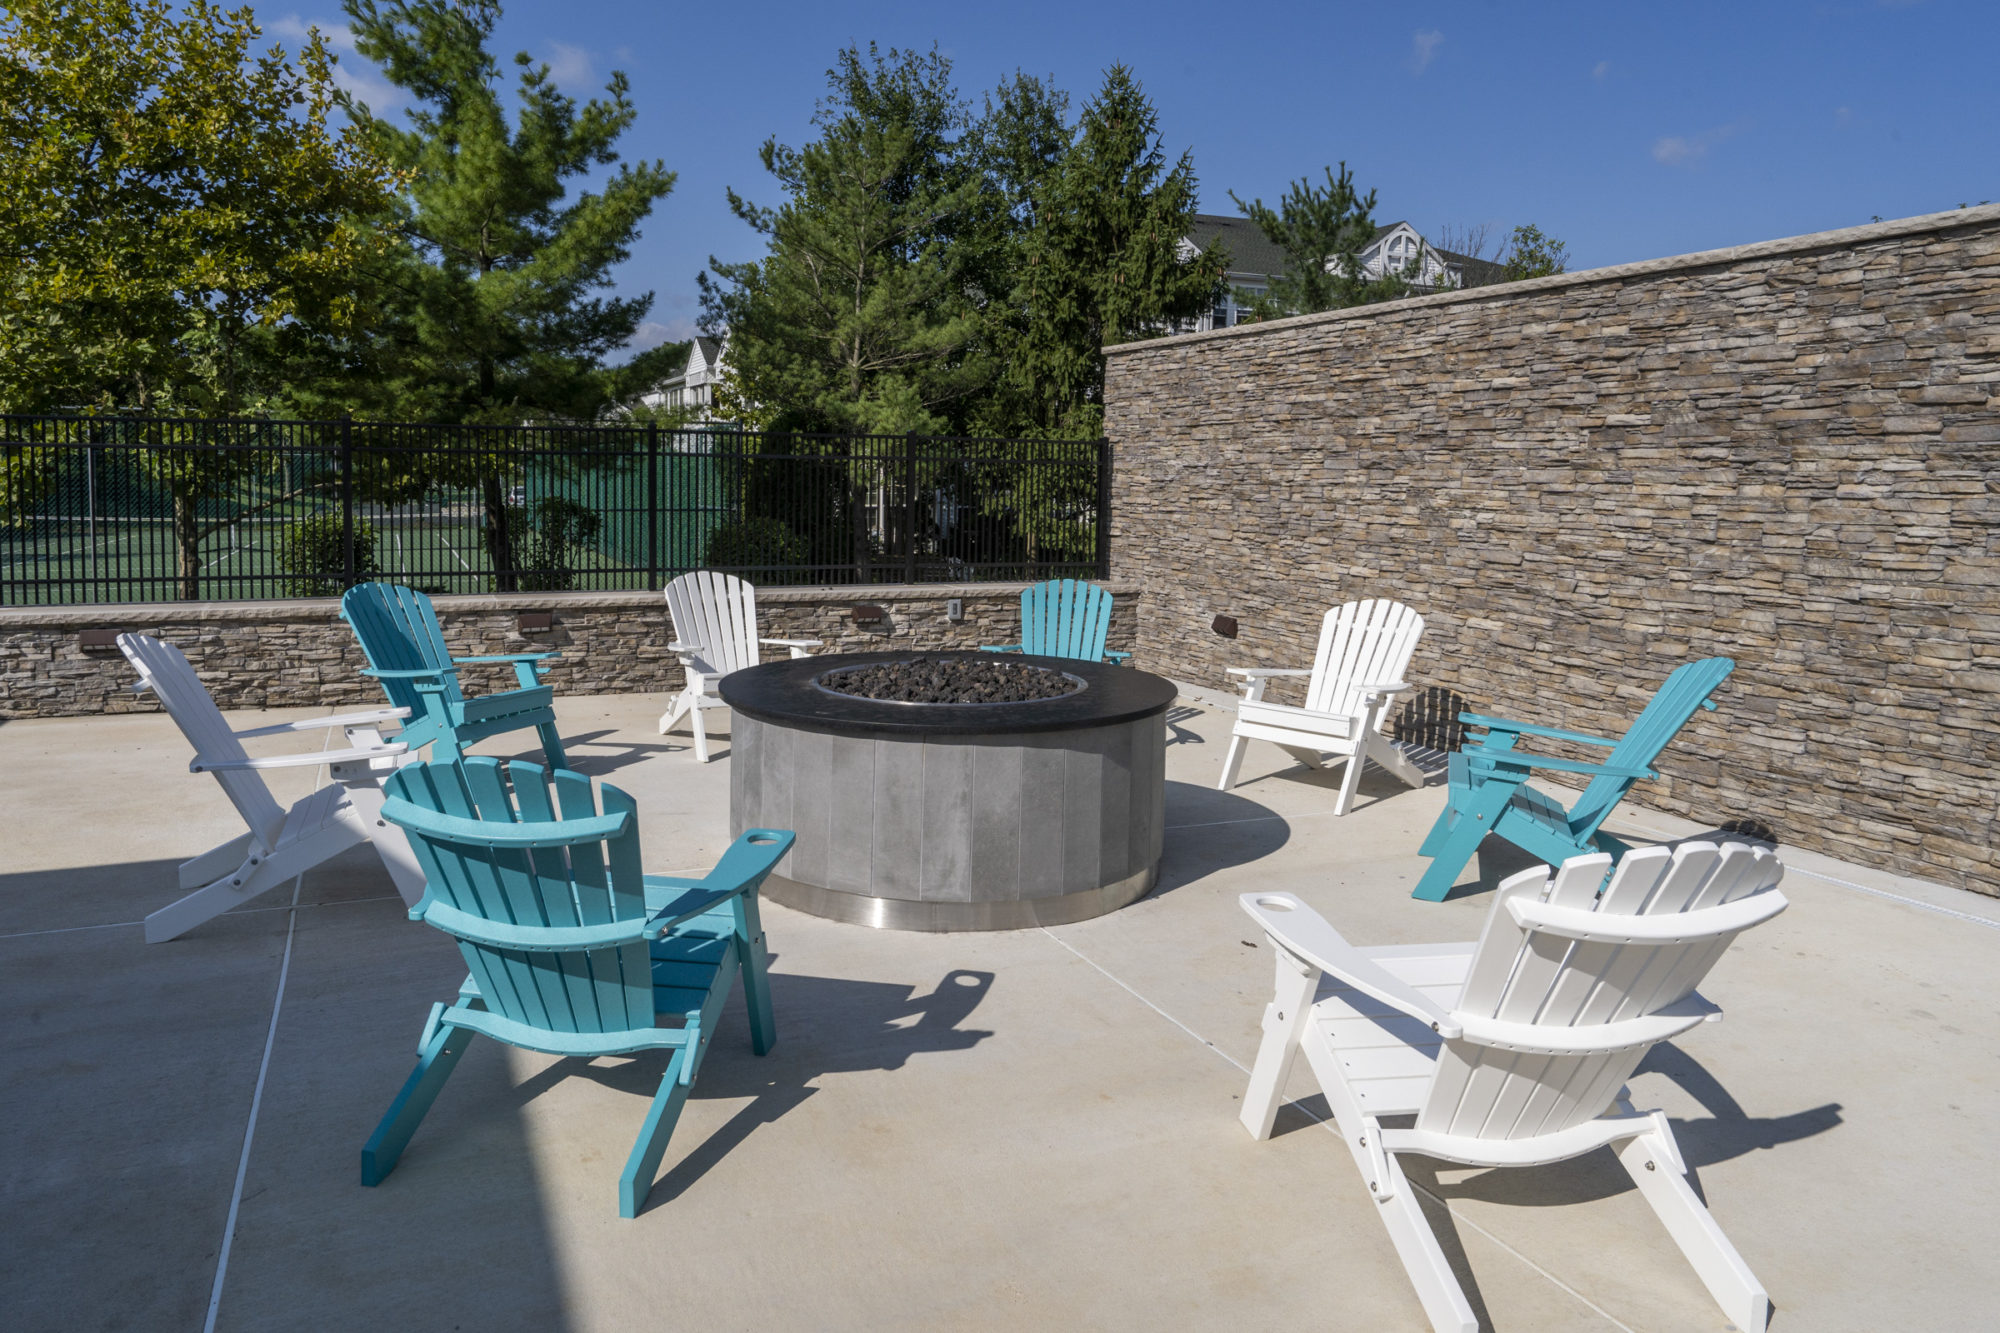 fire pit surrounded by adirondack chairs in the outdoor space at Edge of Yardley apartments